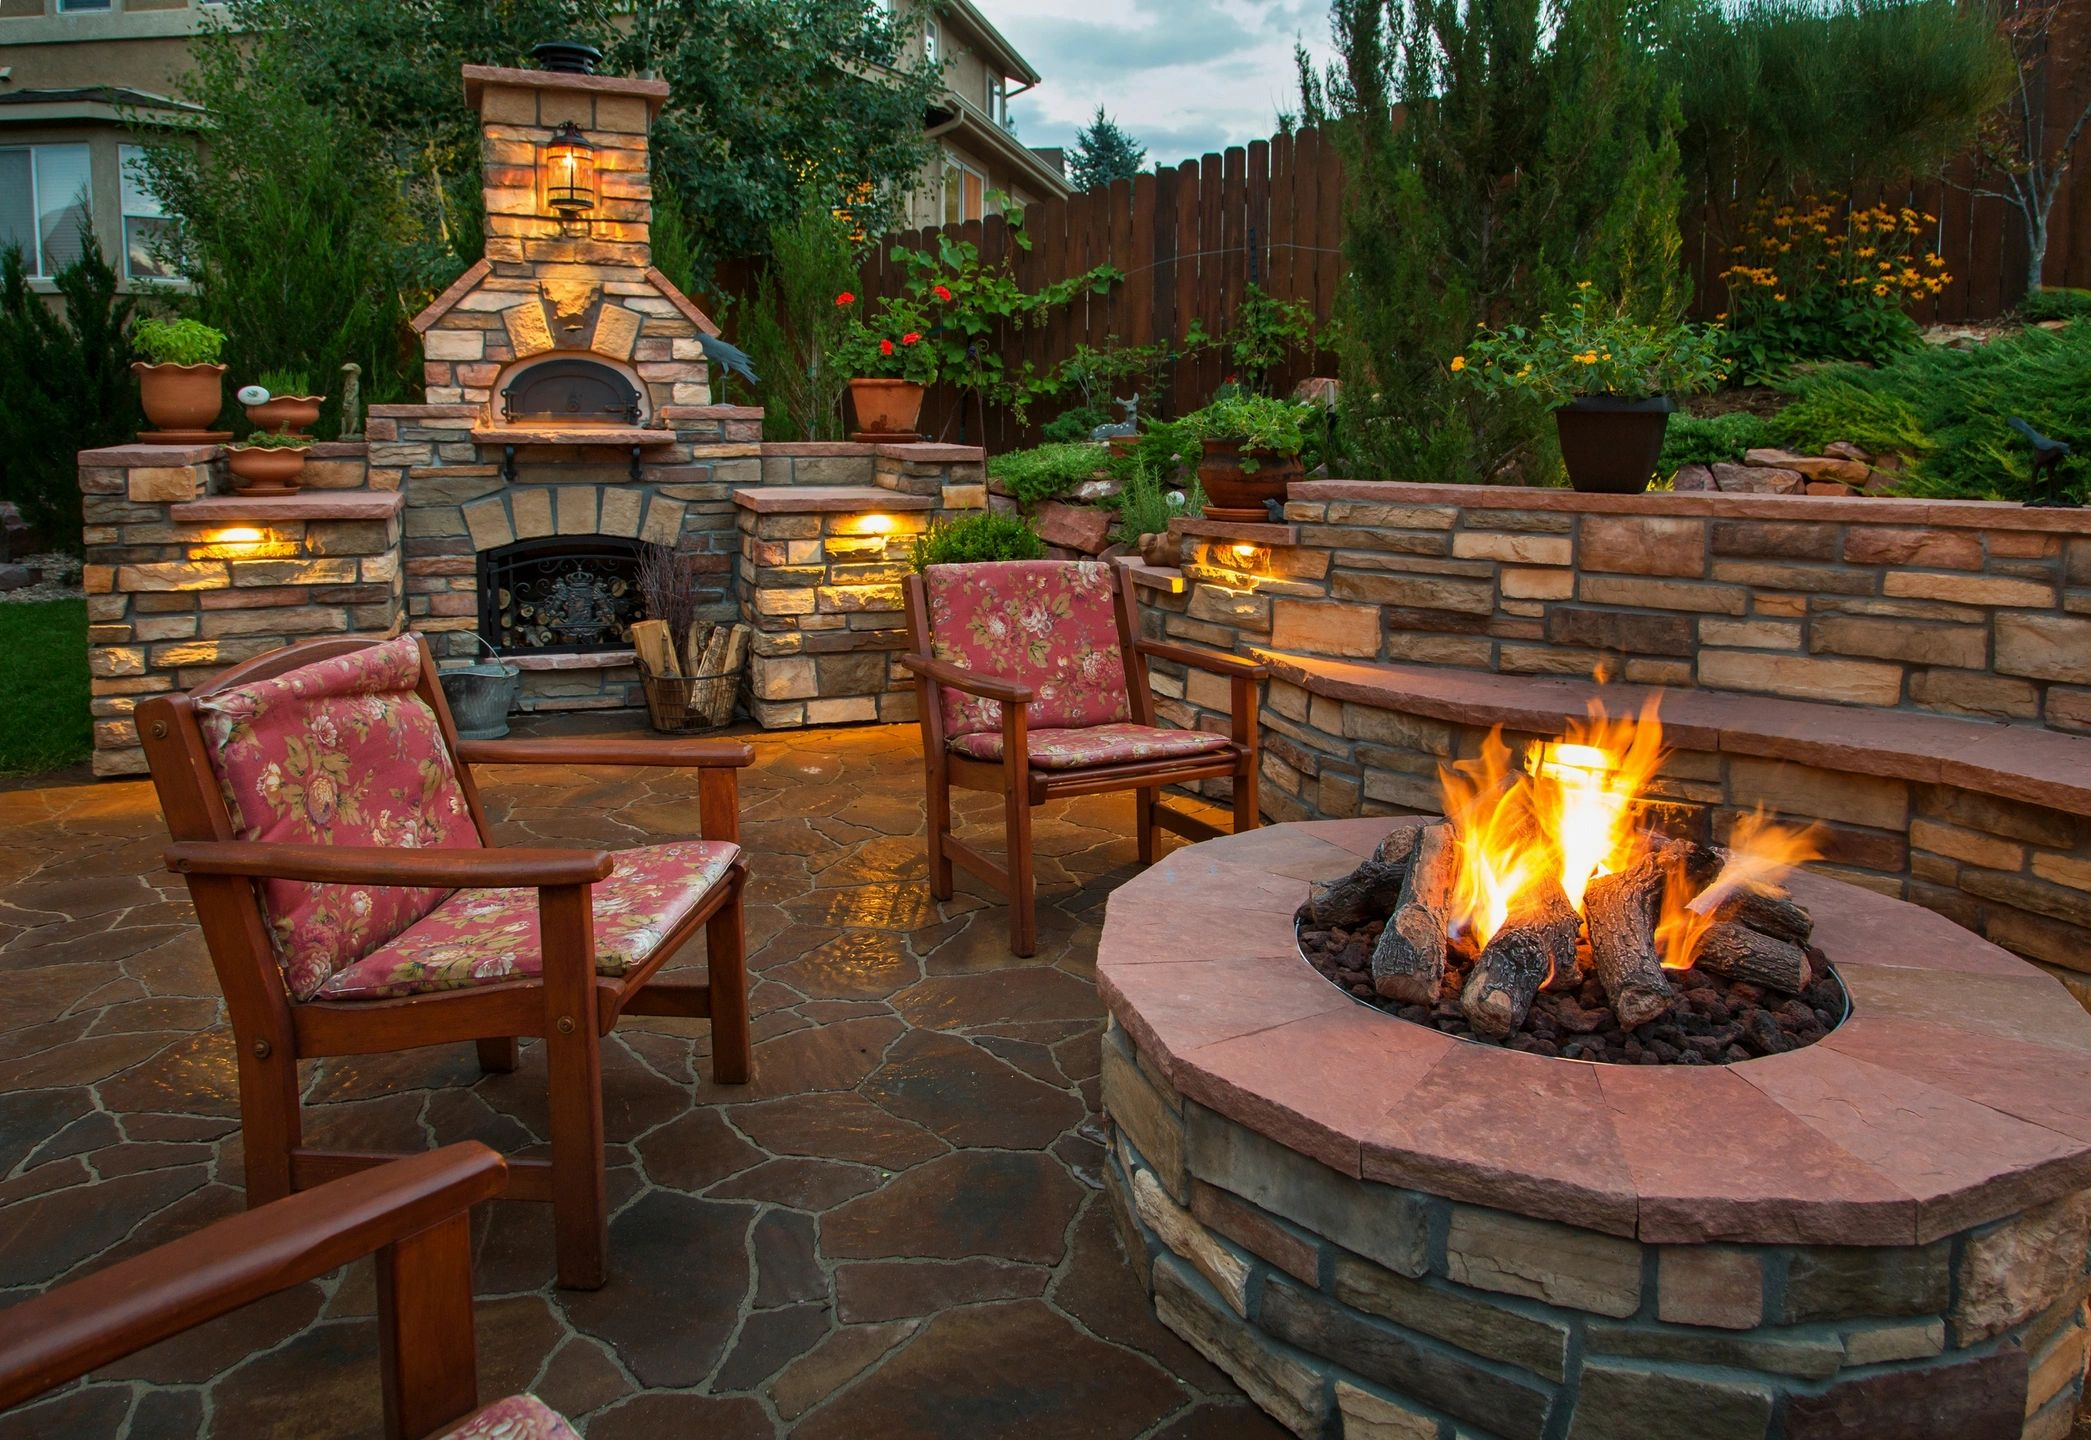 outdoor patio with fire pit and wood burning stove